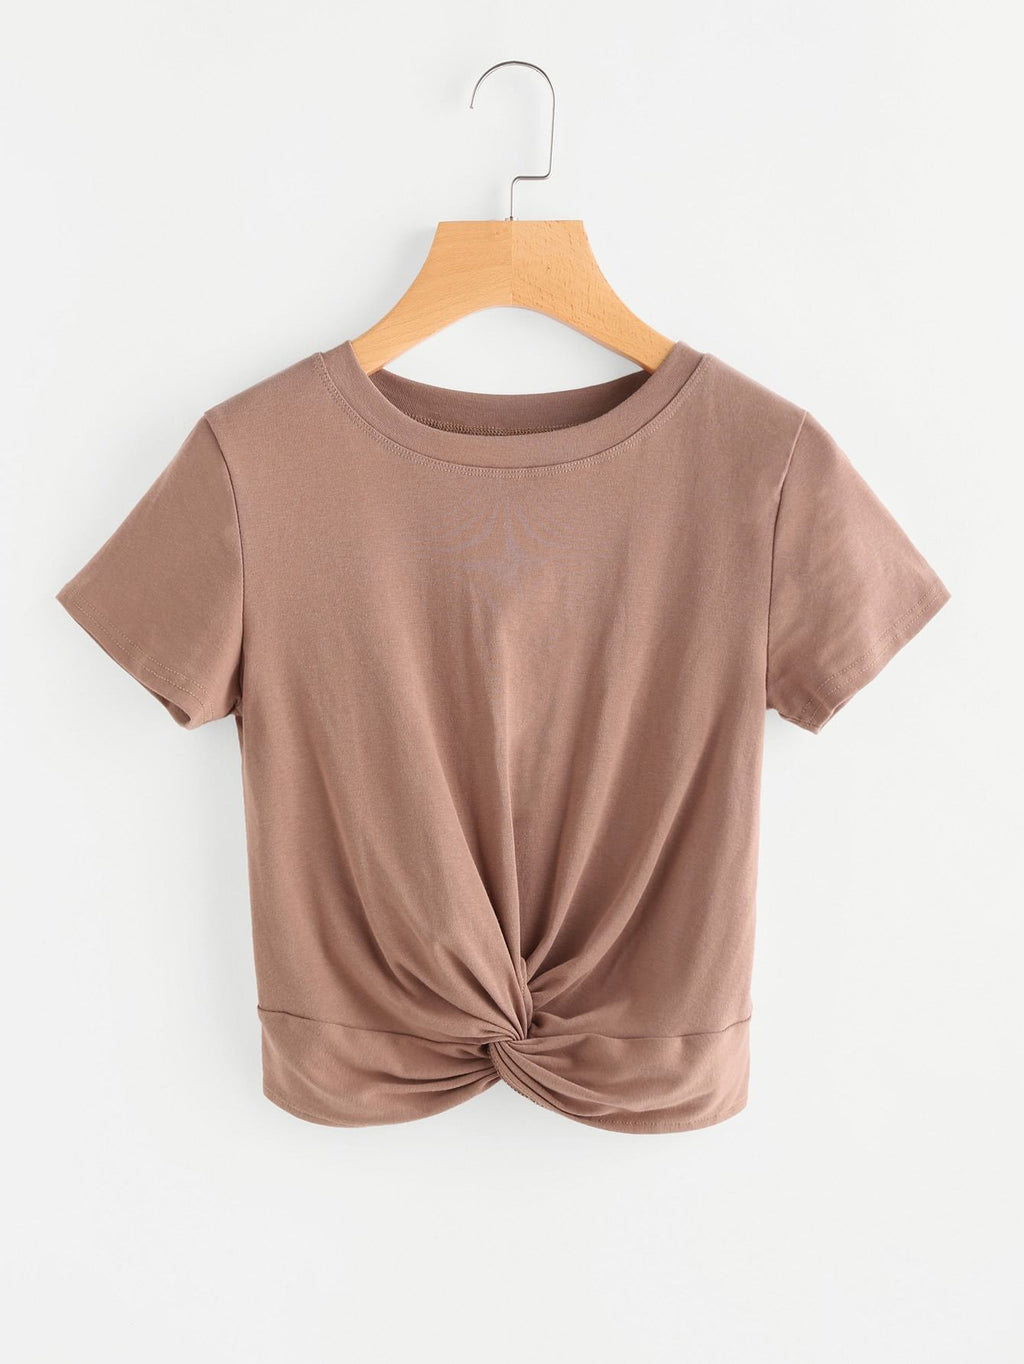 Solid Twist-Front Cropped Tee - INS | Online Fashion Free Shipping Clothing, Dresses, Tops, Shoes